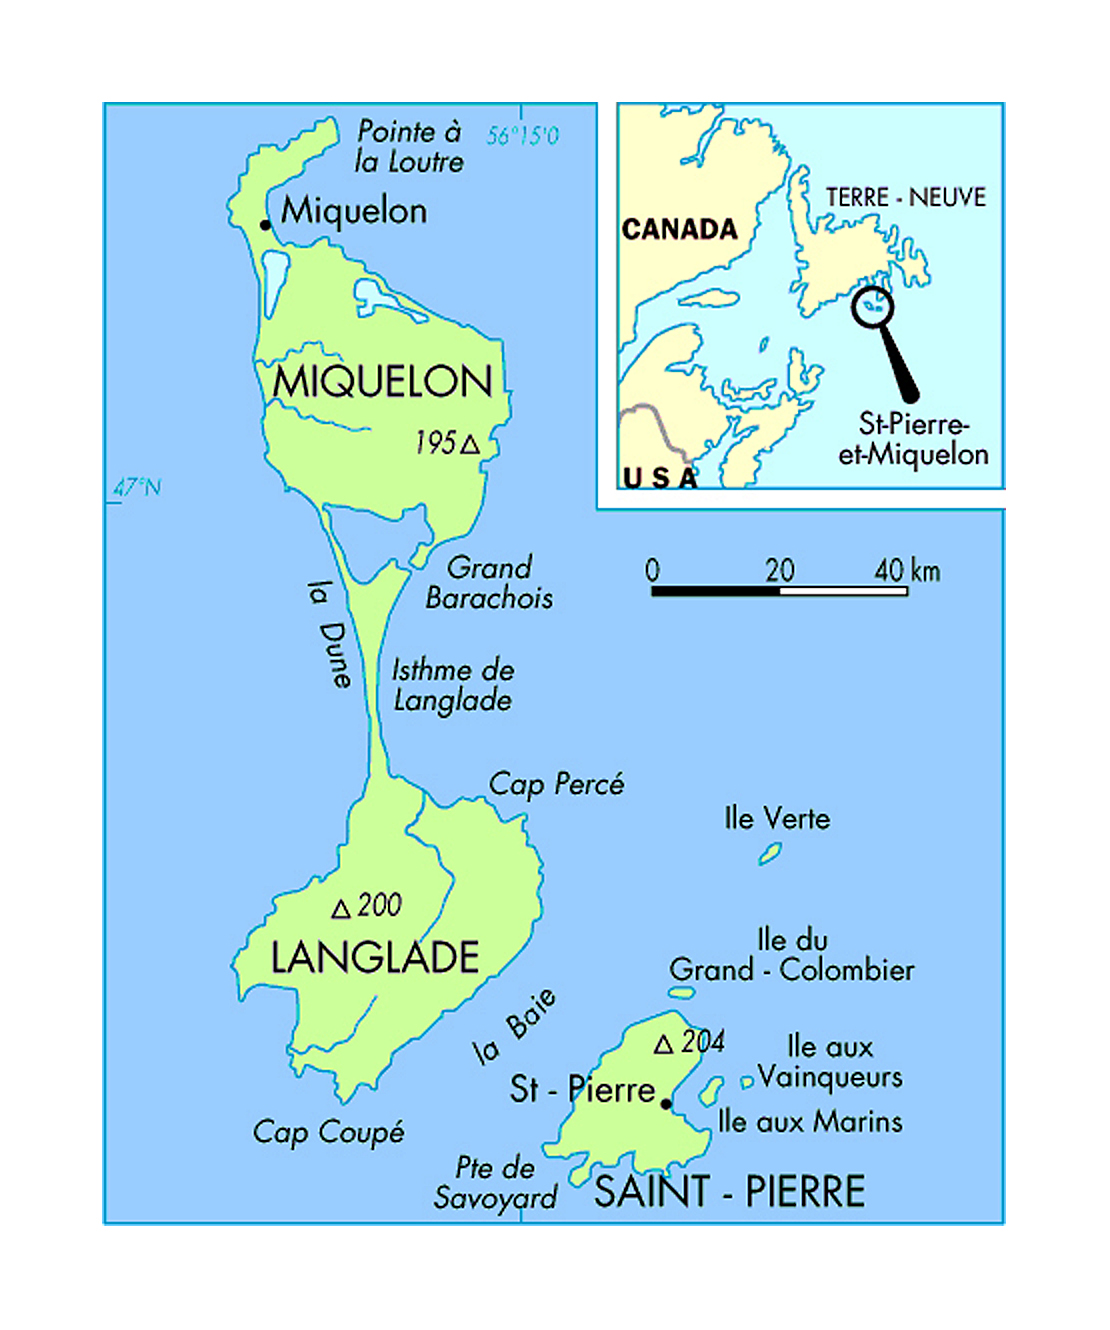 Political map of Saint Pierre and Miquelon with majot cities Saint